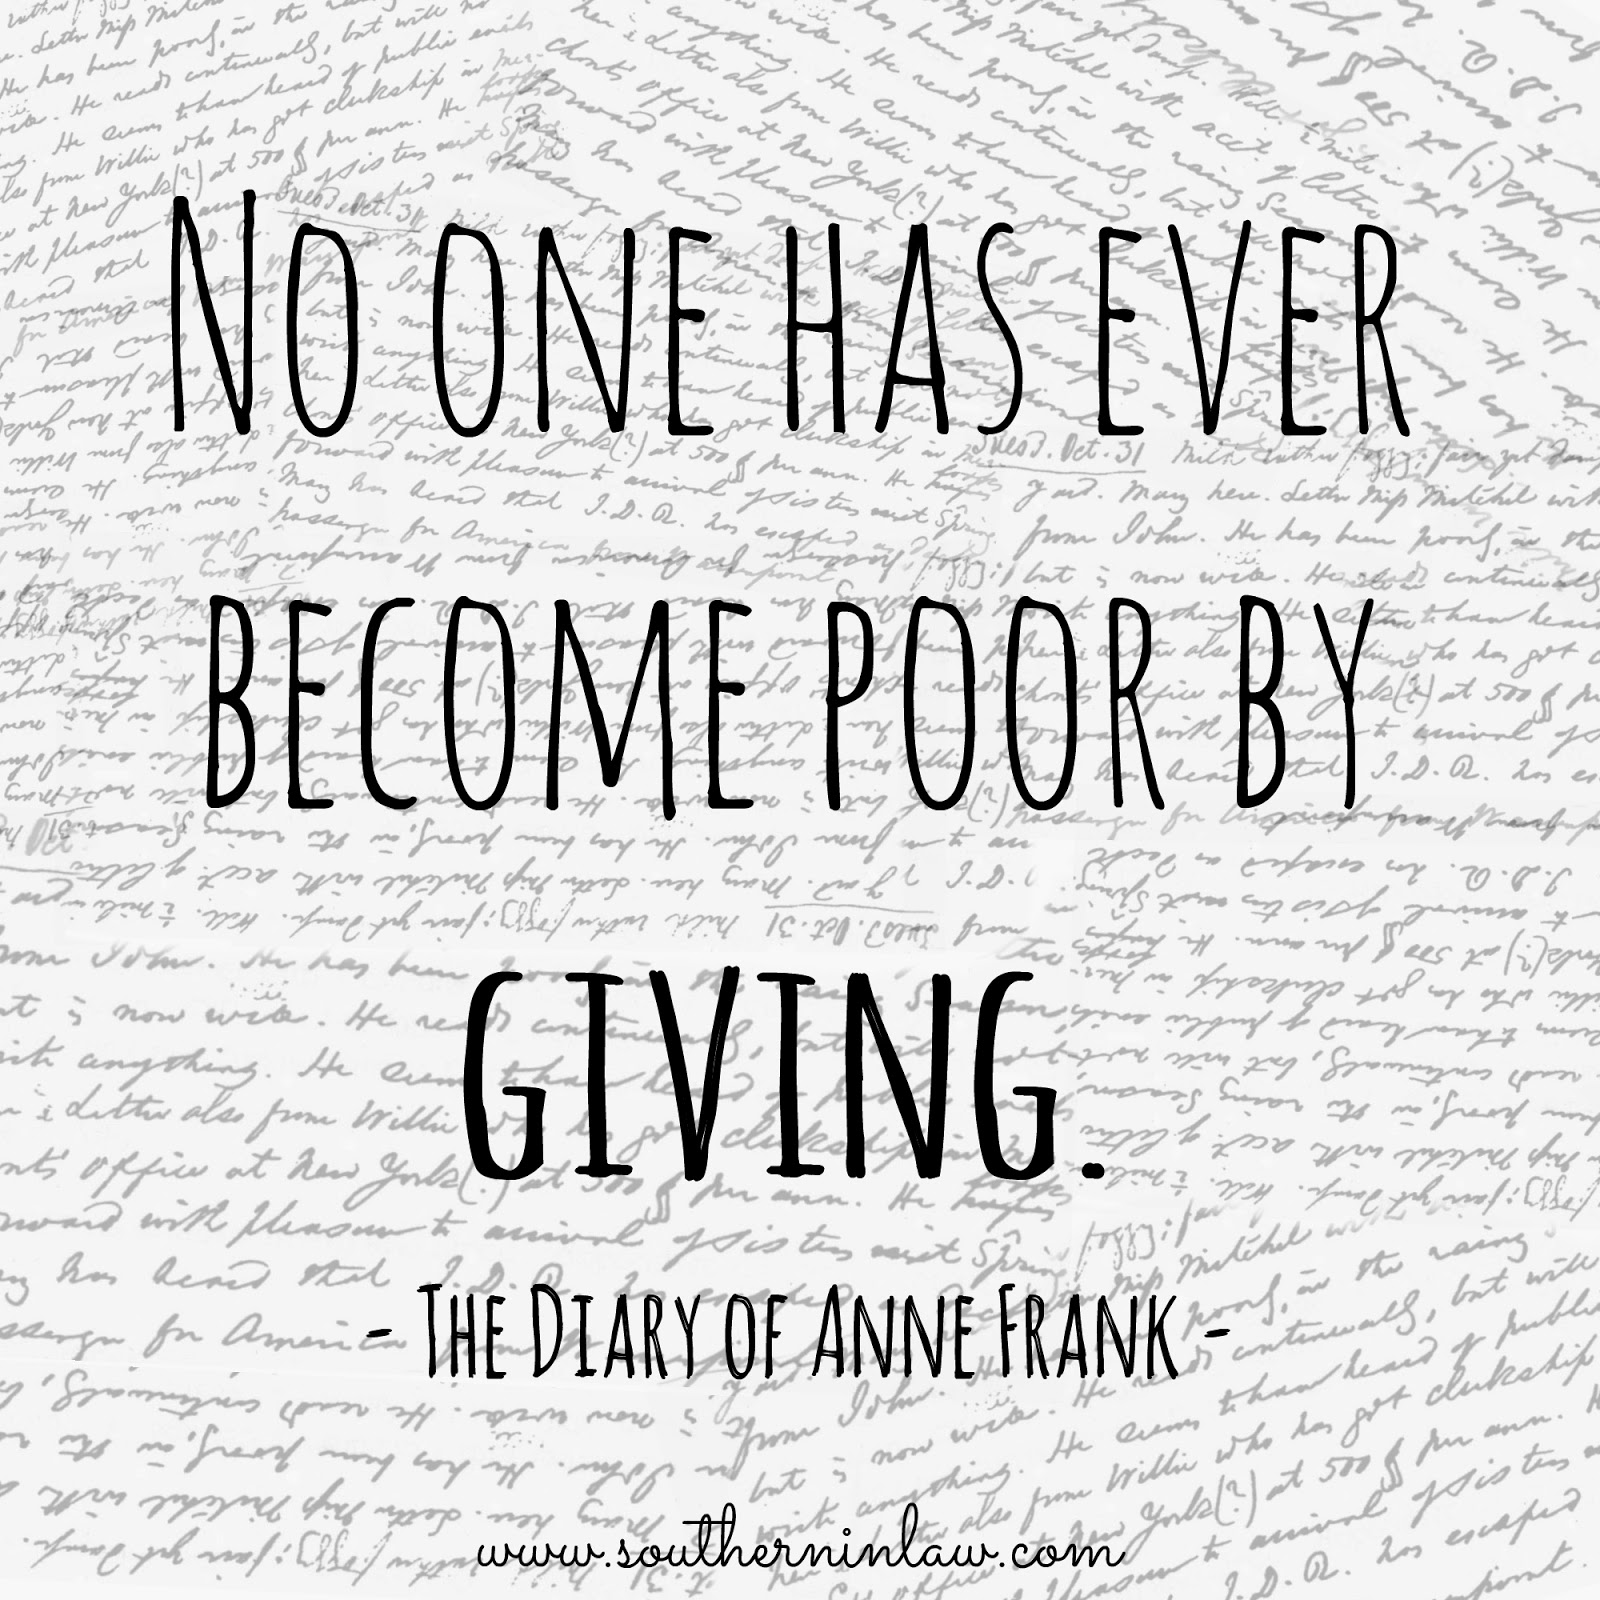 No One Has Ever Become Poor By Giving - The Diary of Anne Frank